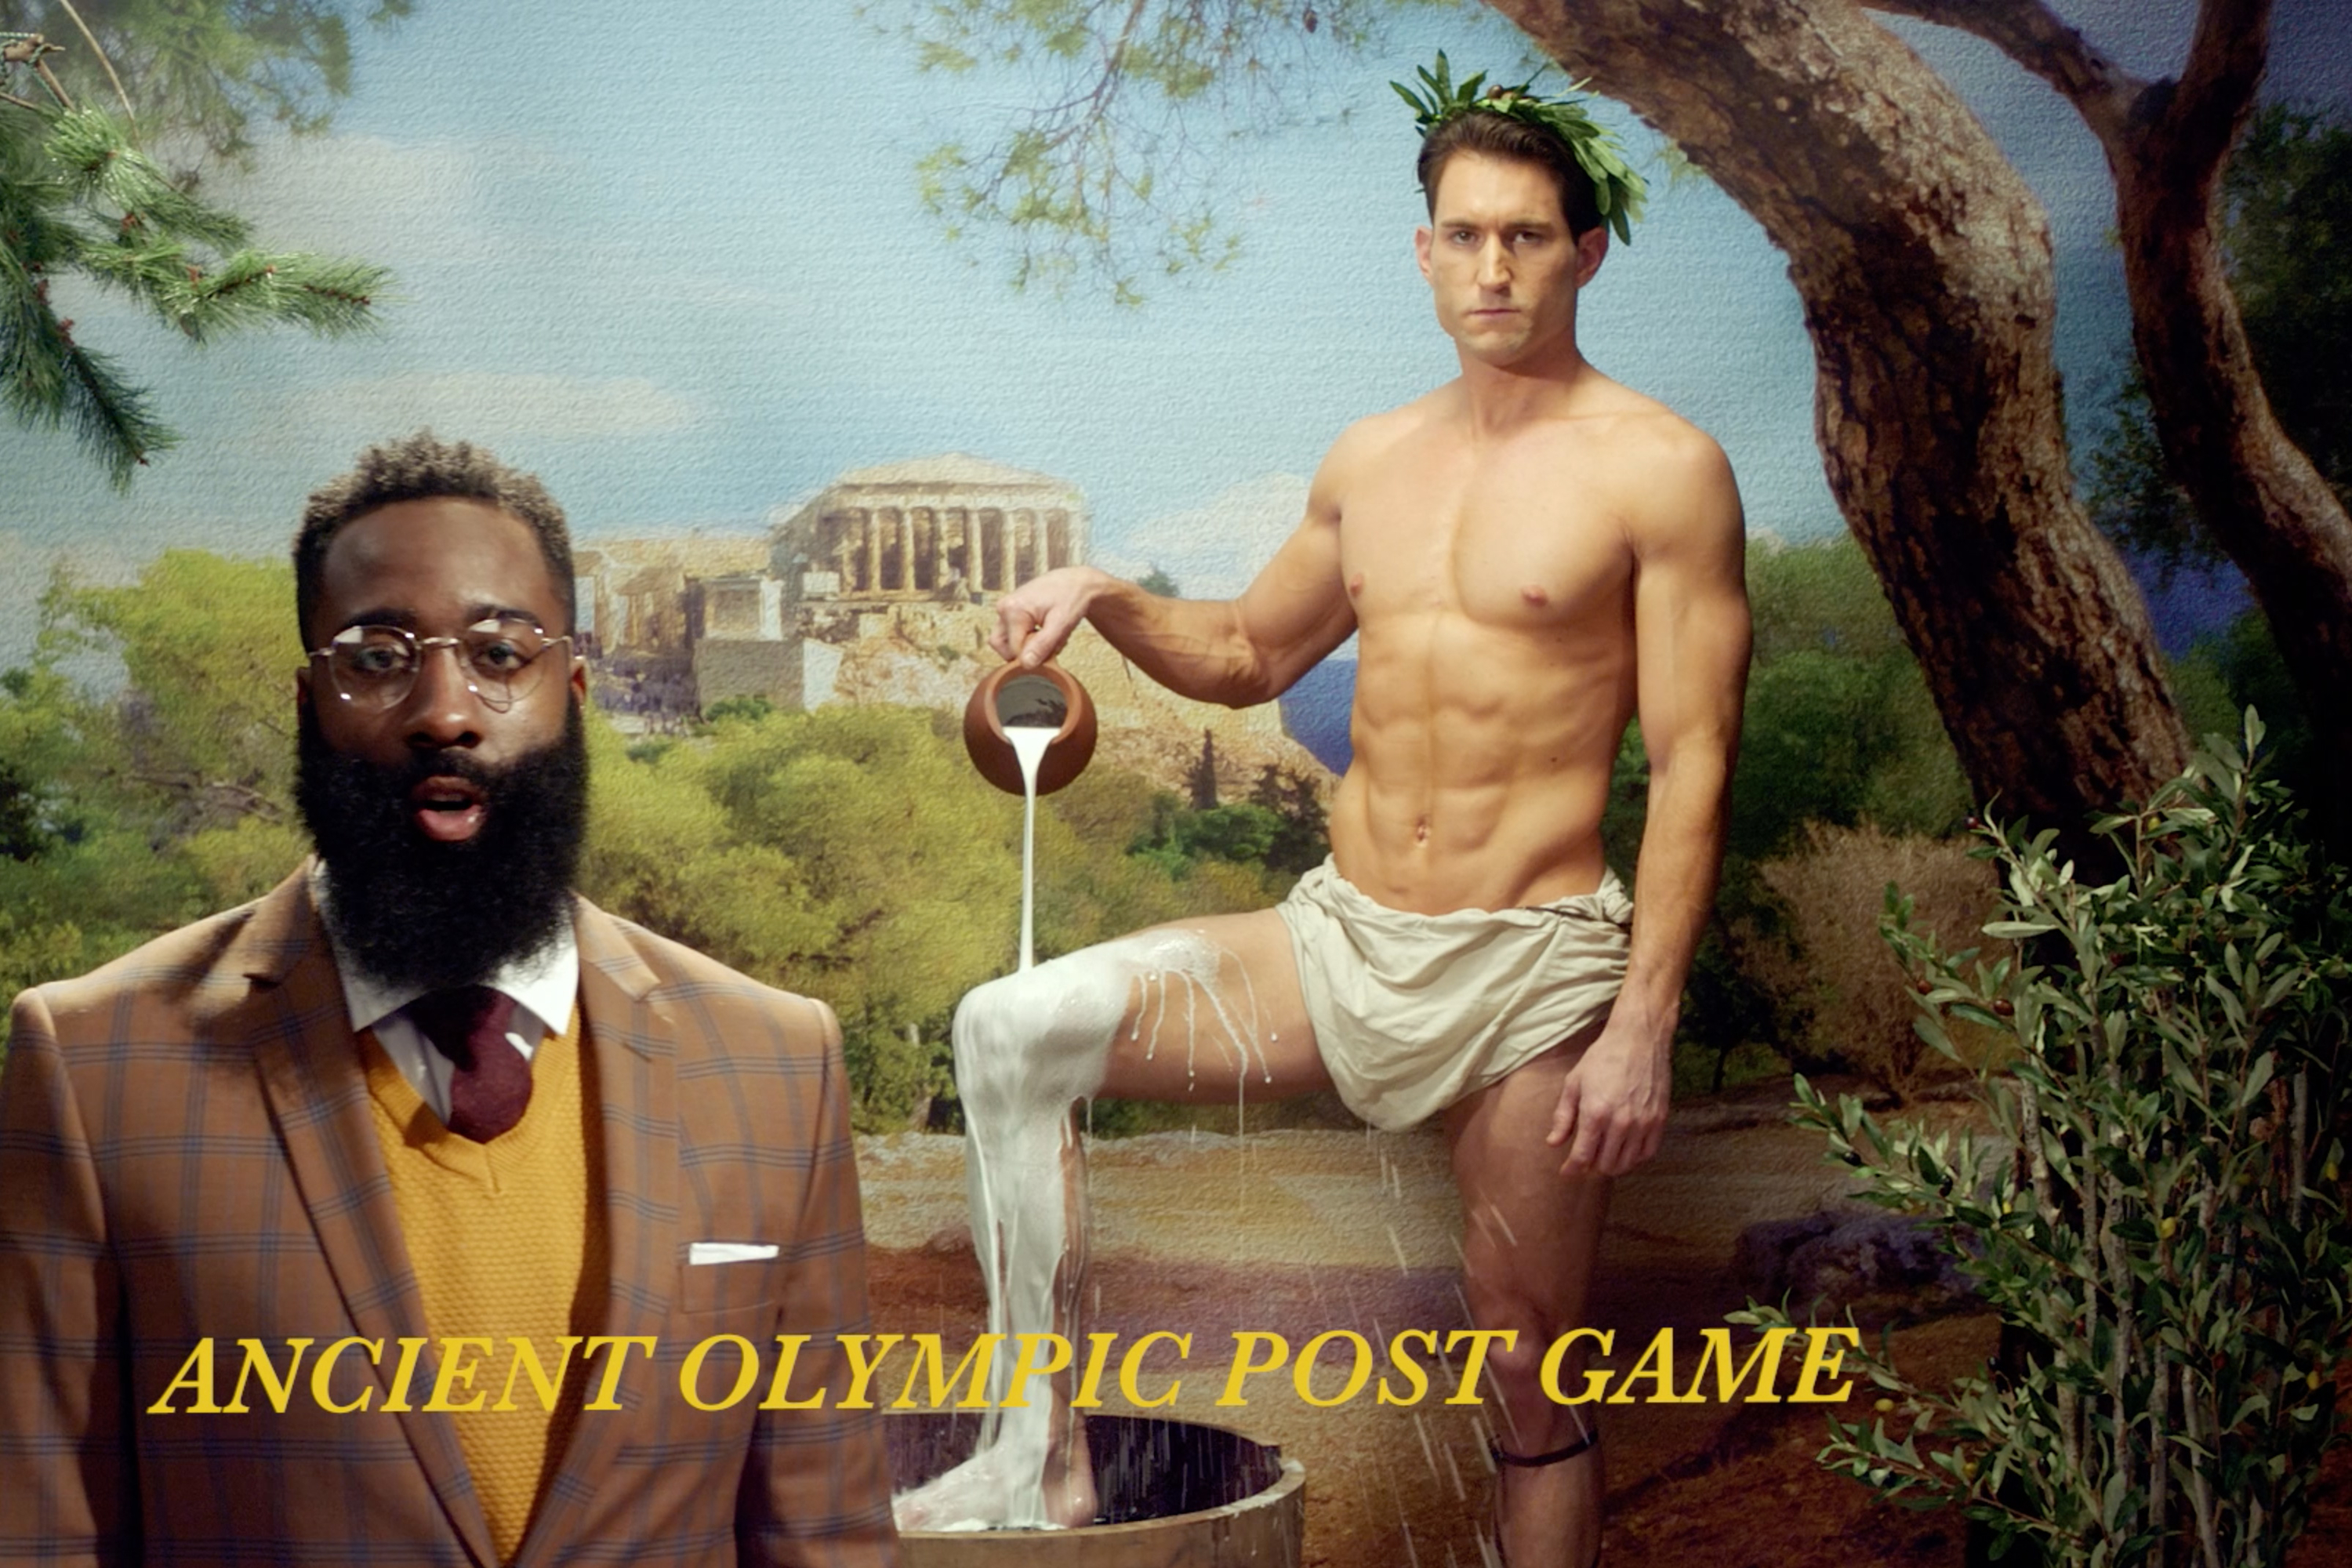 Art of Sport skincare brand, co-founded by Kobe Bryant, debuts first TV spots